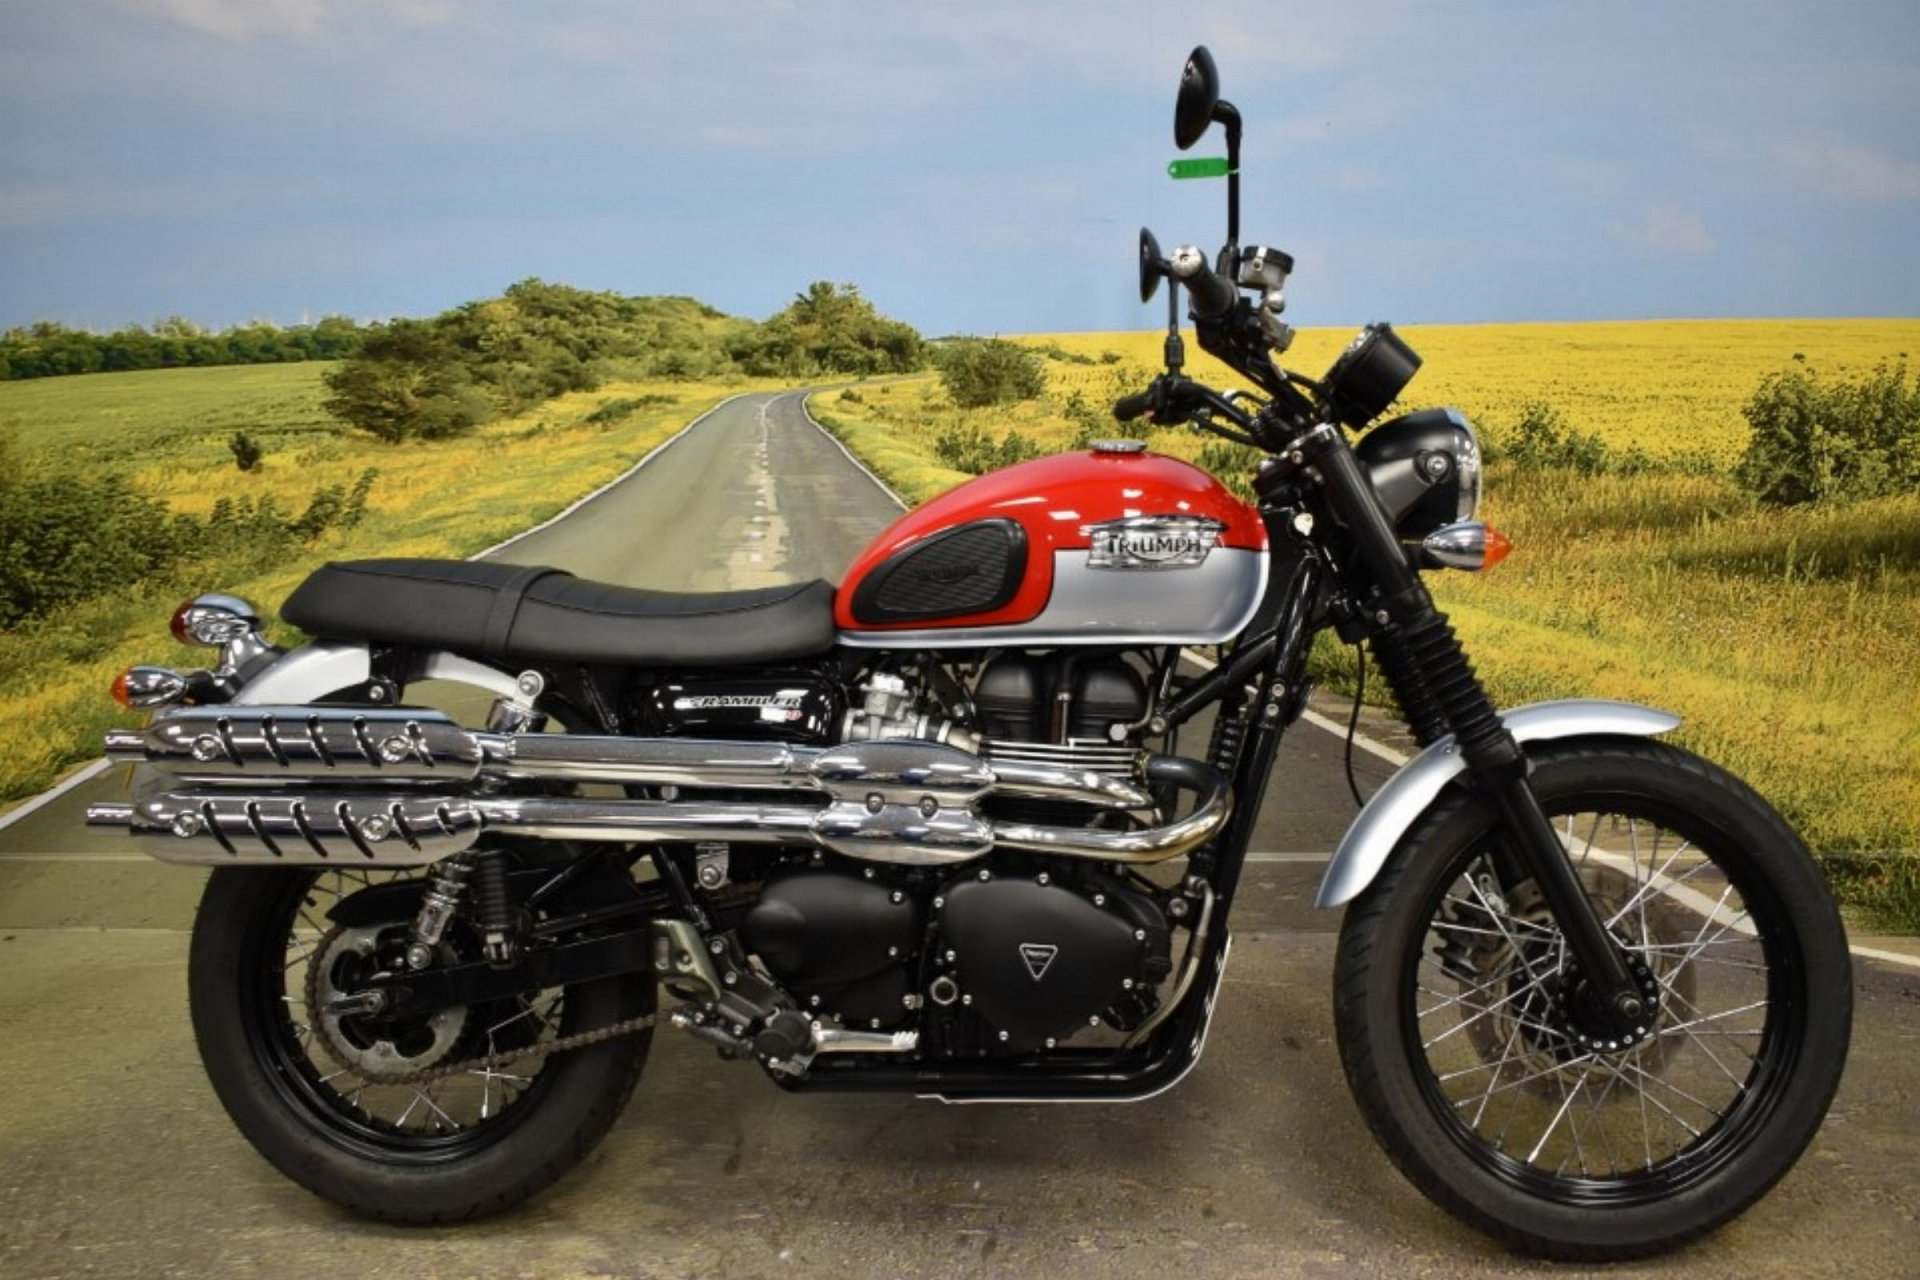 2017 Triumph Scrambler for sale in Derbyshire